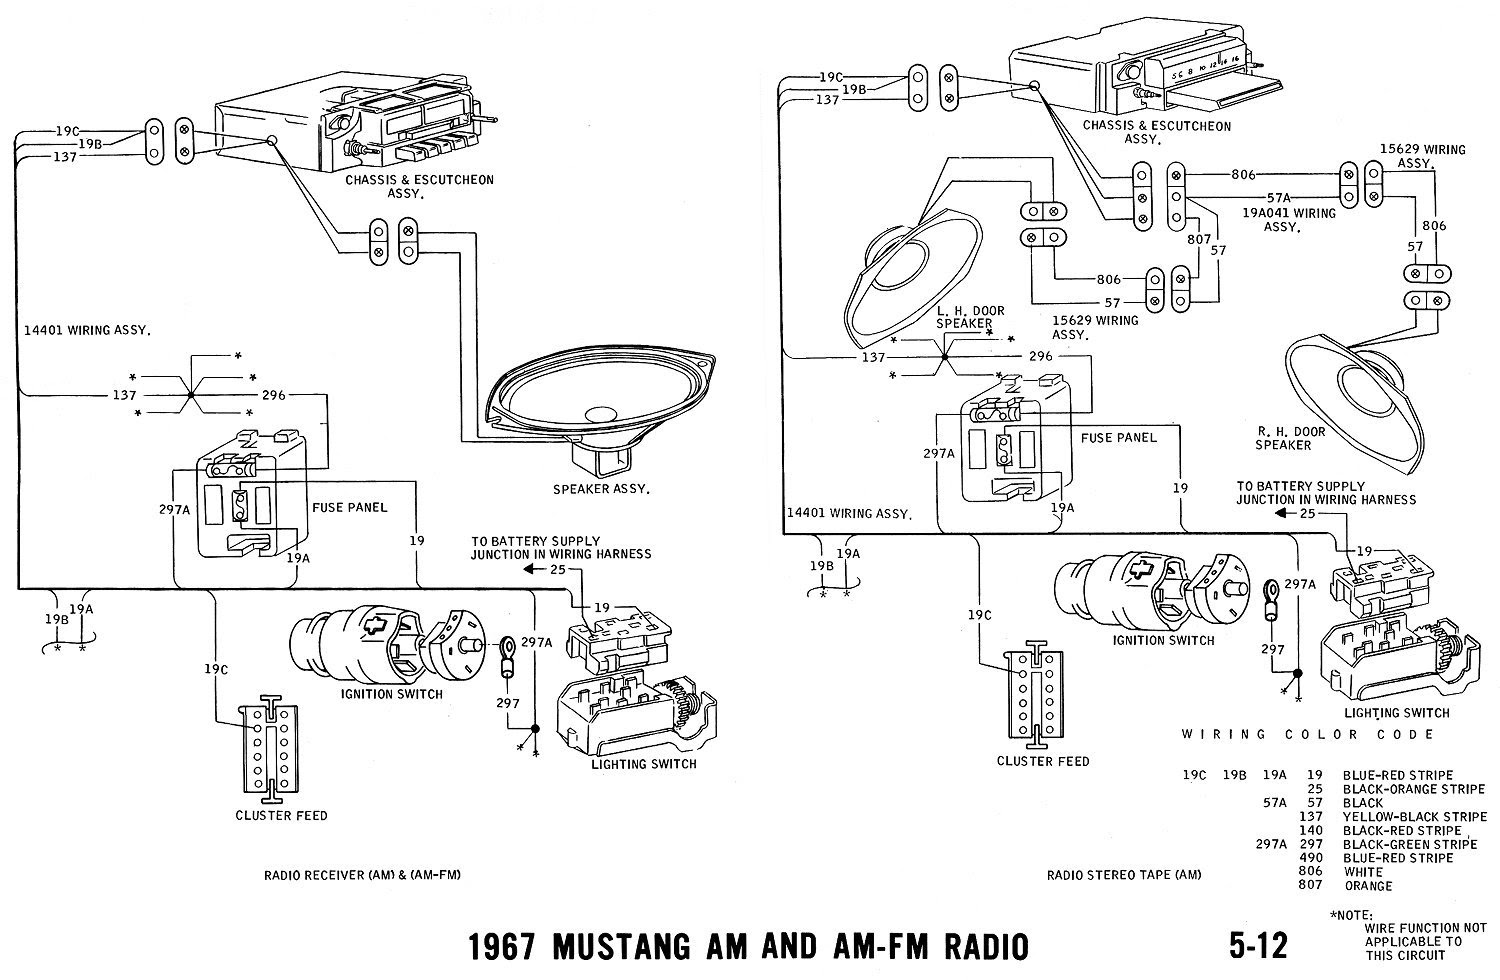 Diagram 1992 Mustang Radio Wiring Diagram Full Version Hd Quality Wiring Diagram Carmotorwiring Creasitionline It